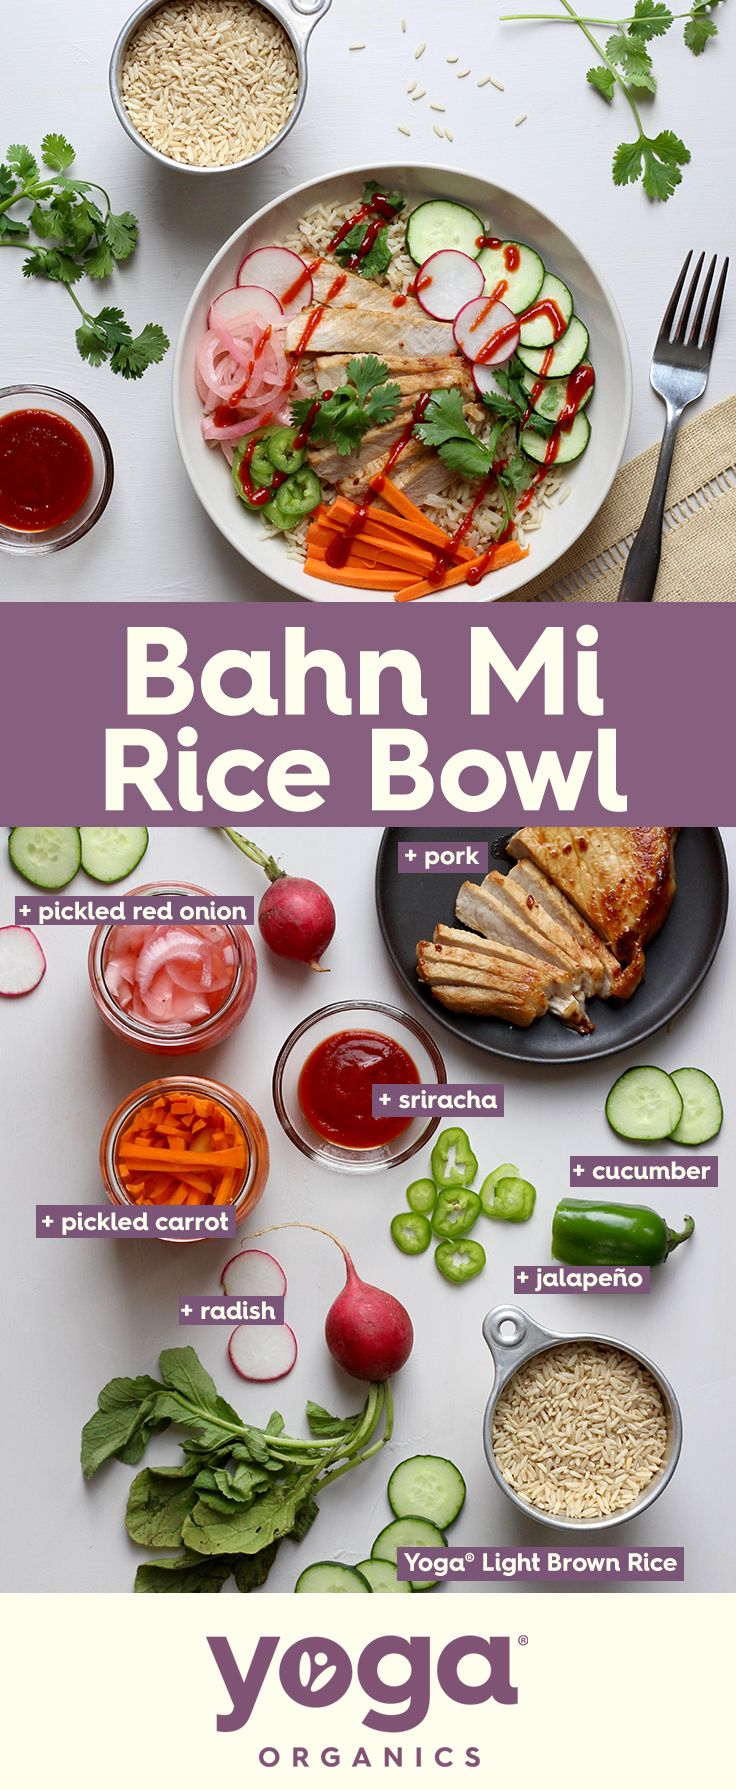 Fresh Crunchy Salty Sweet Spicy This Bhan Mi Bowl Has All The Flavors And Textures Of Your Favorite Vietnamese Sandwich In Delicious Rice Bowl Form